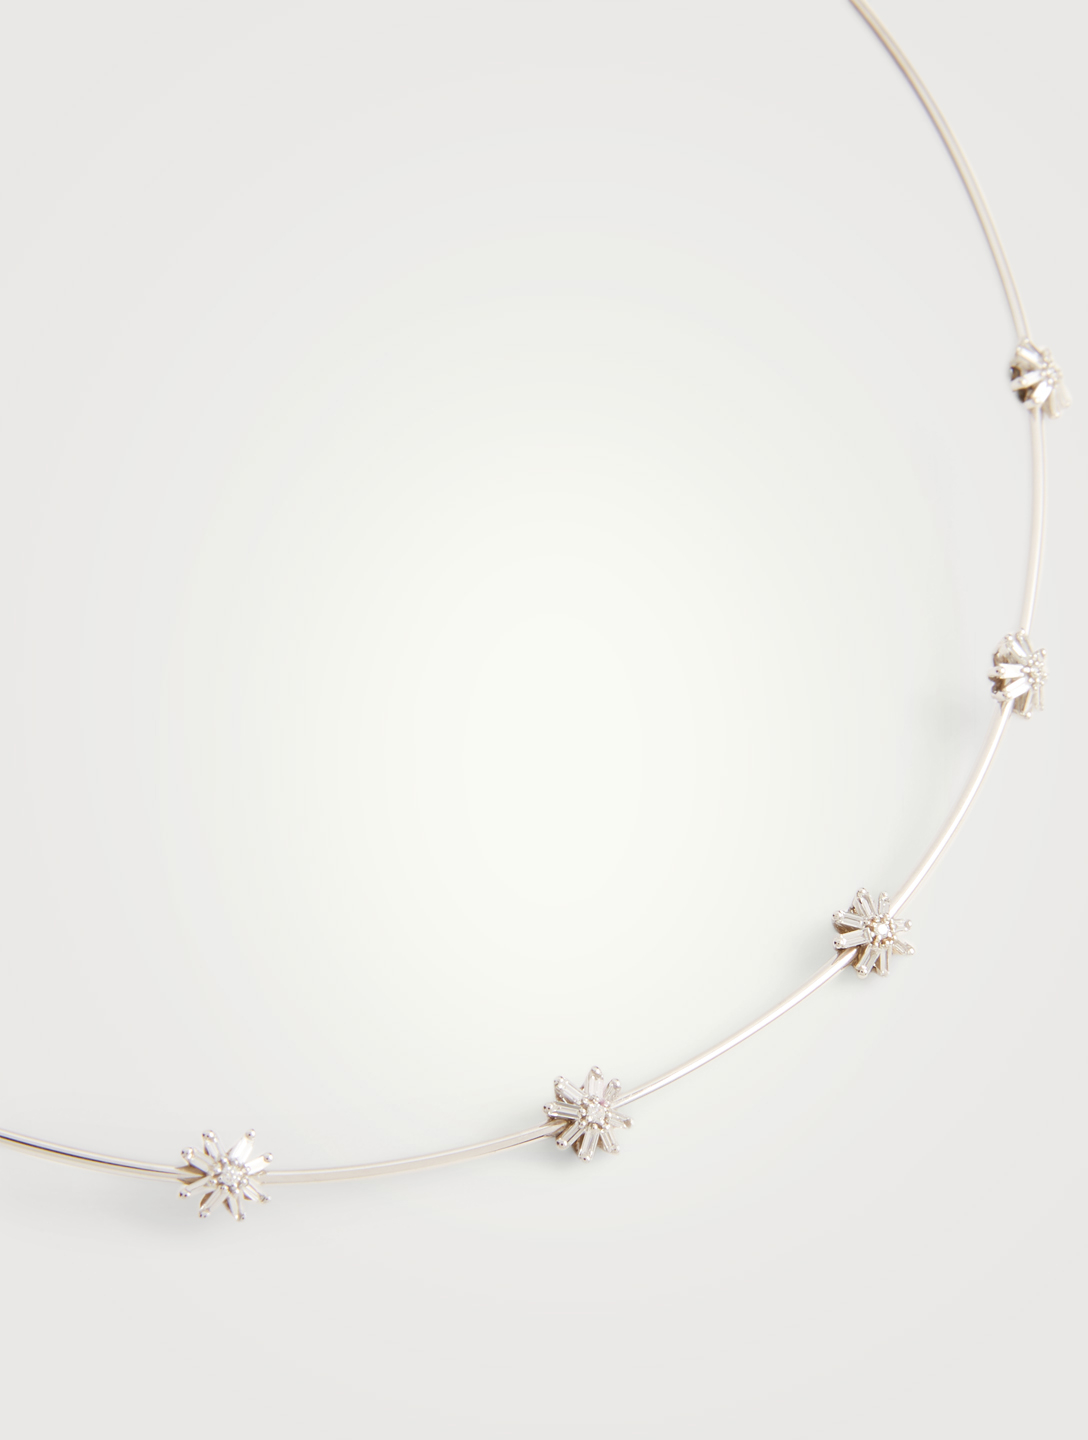 SUZANNE KALAN Fireworks 18K White Gold Cluster Collar Necklace With Diamonds Women's Metallic